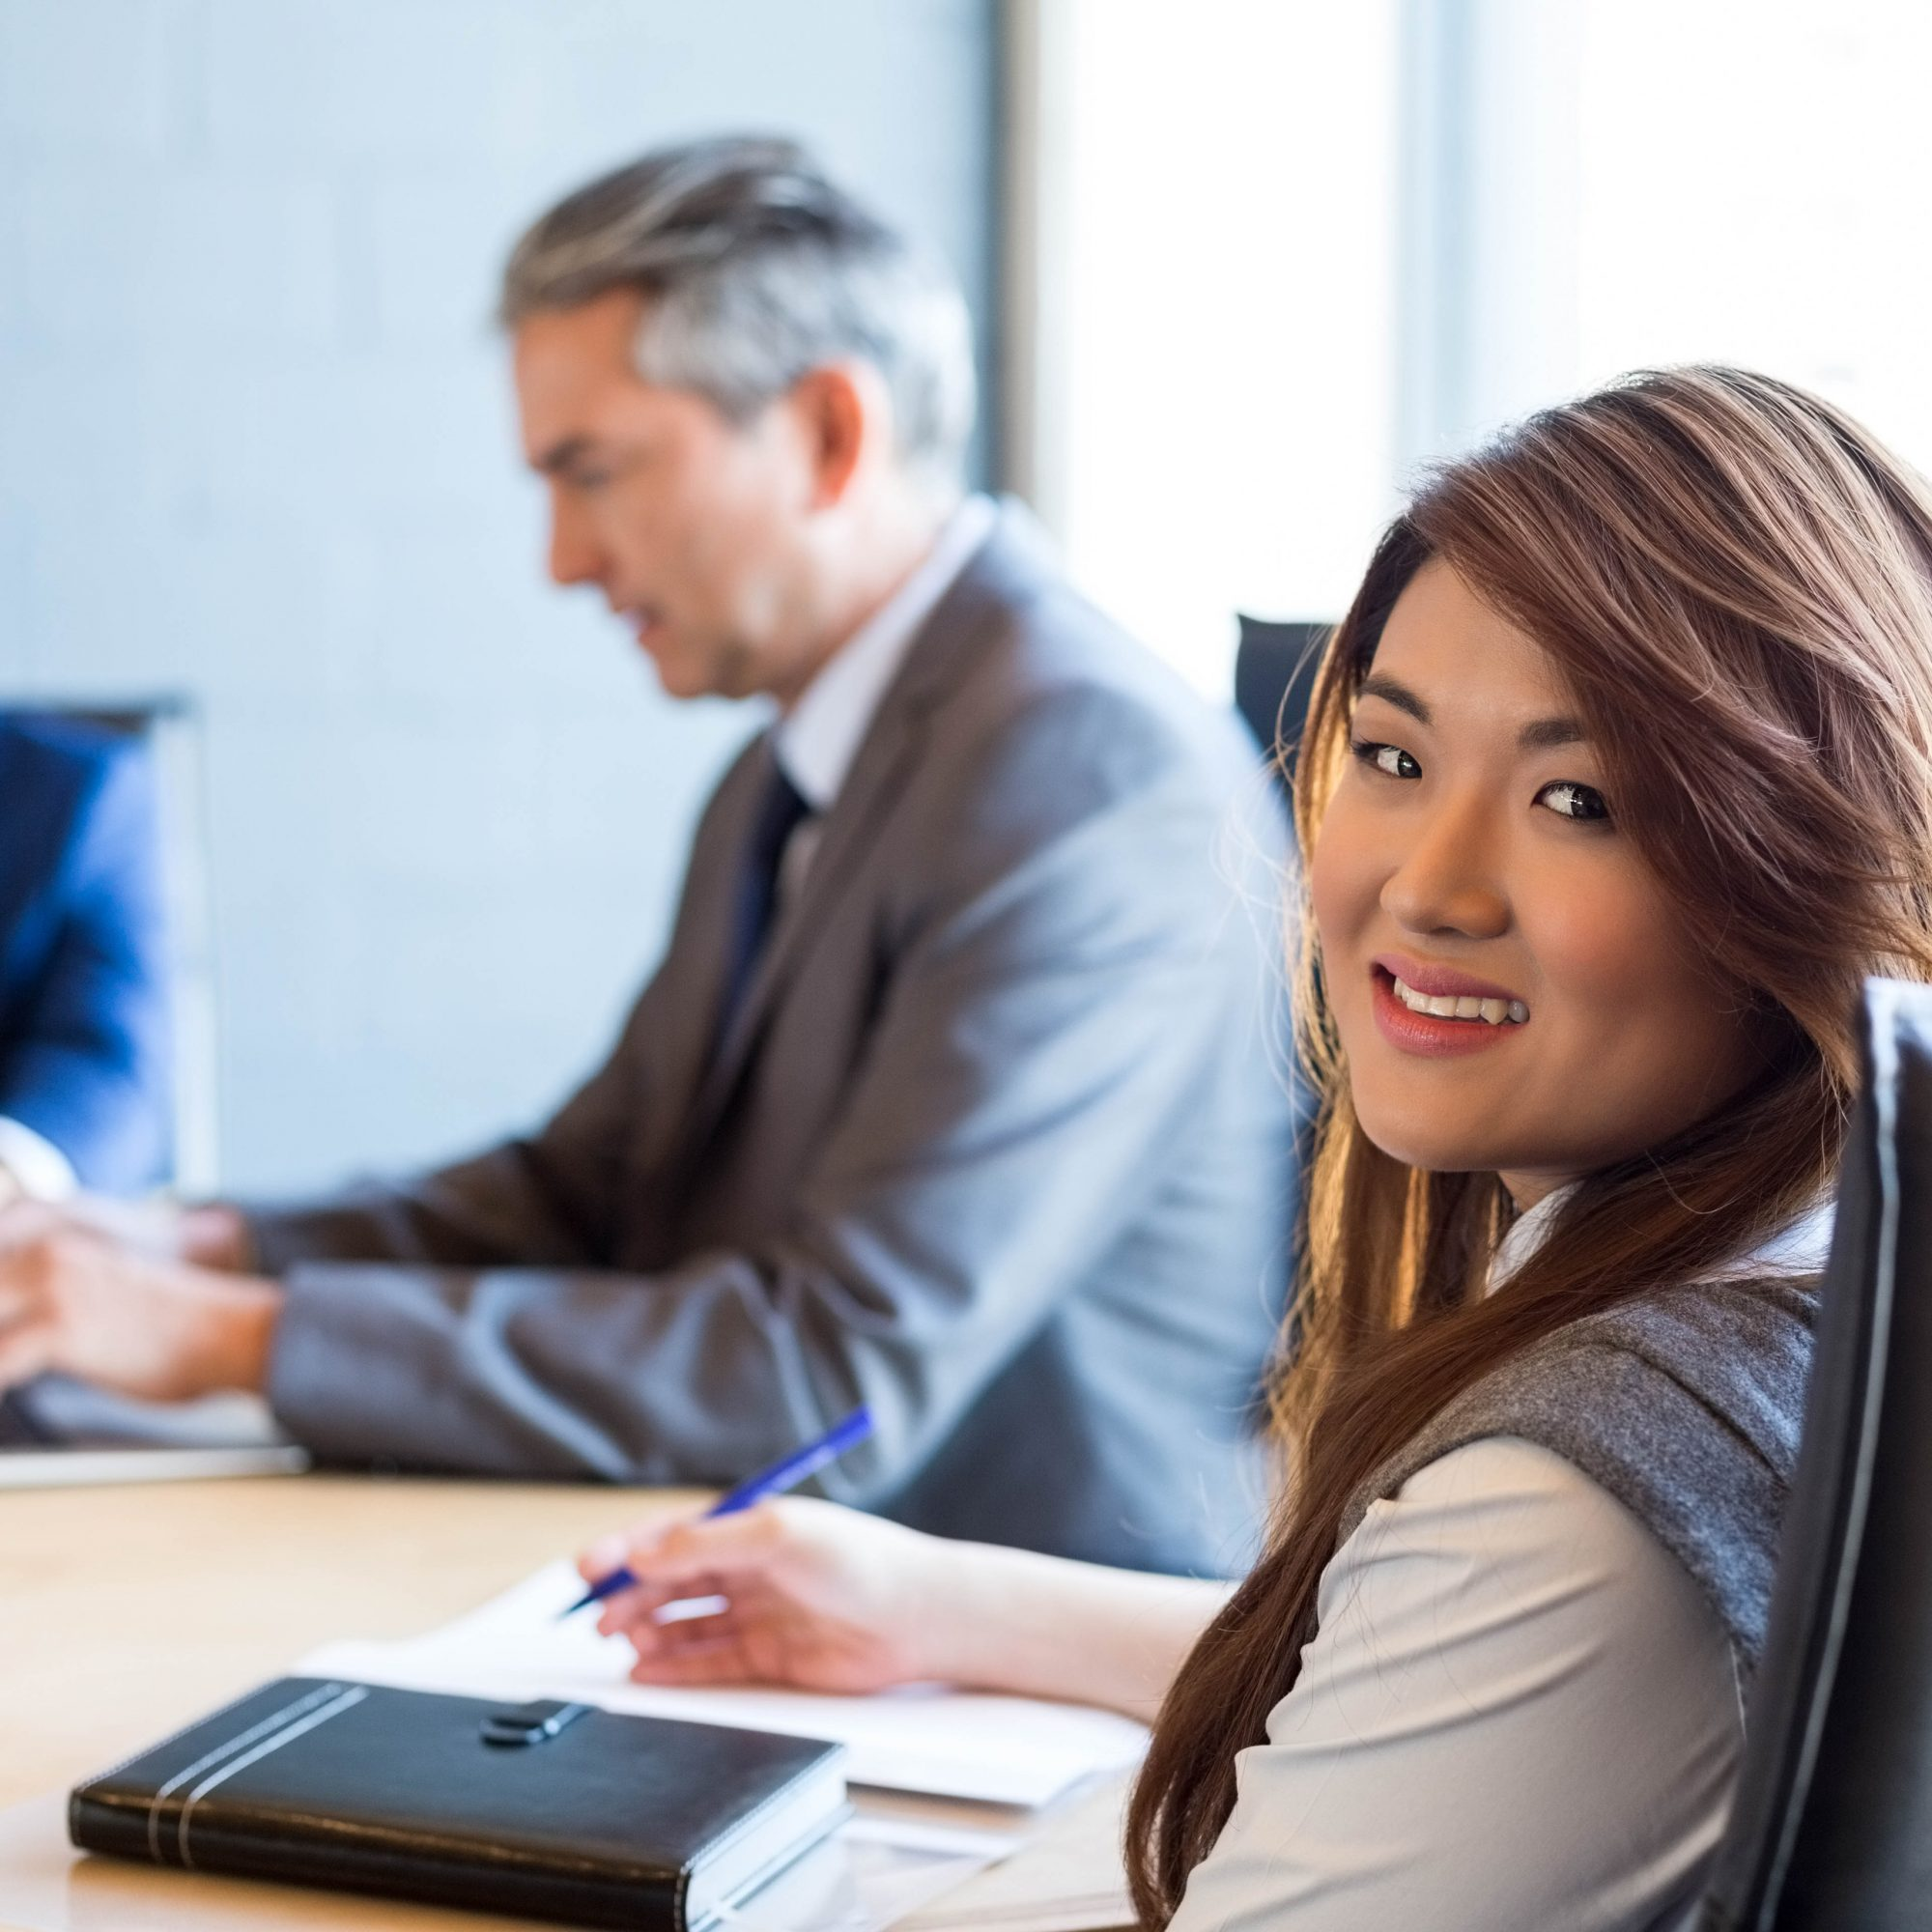 Confident businesswoman in a conference room during meeting at office